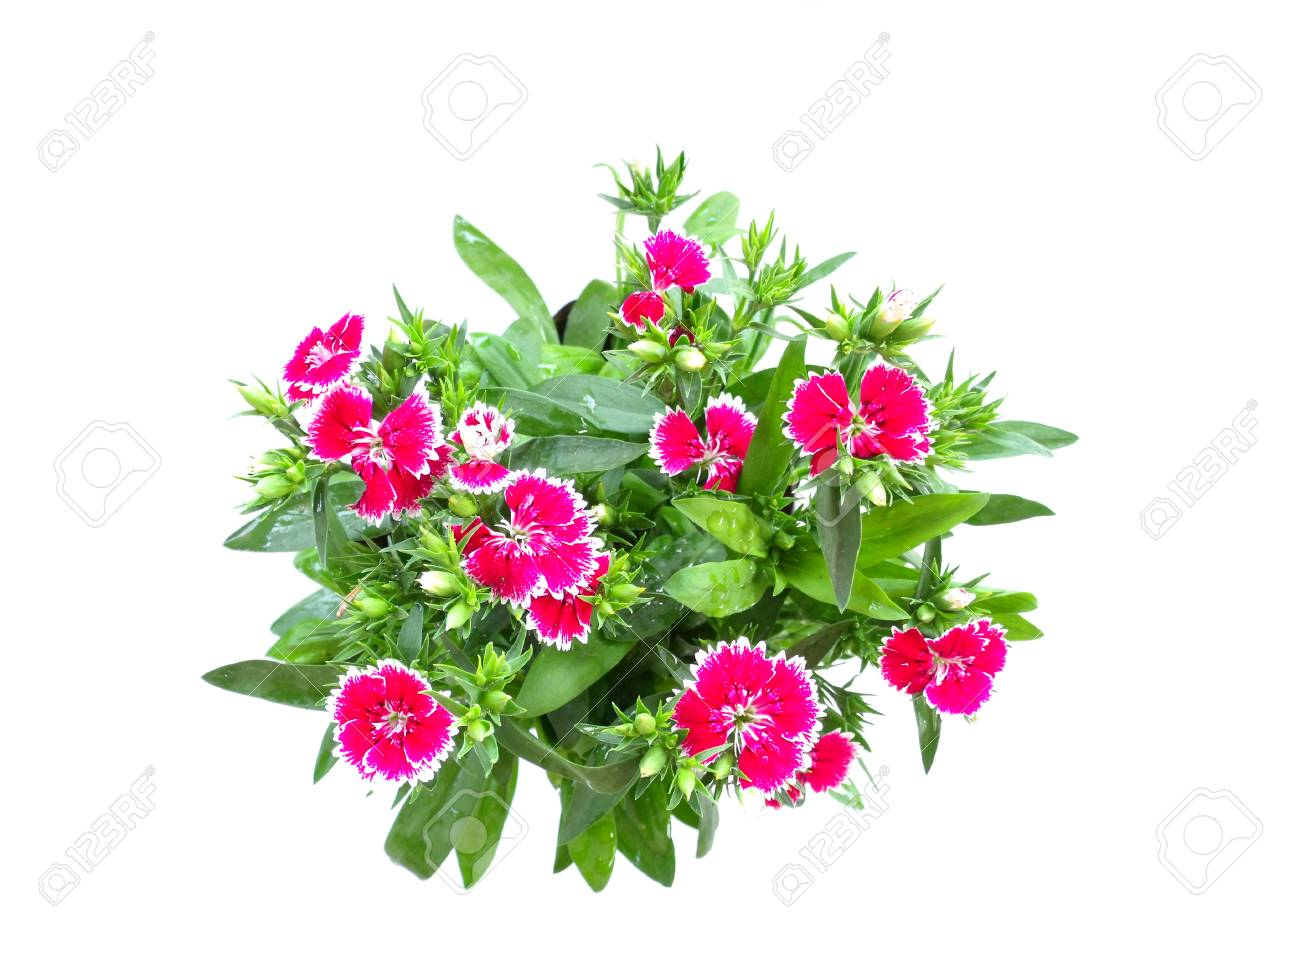 Plants With Beautiful Pink Flowers Isolated On White Background